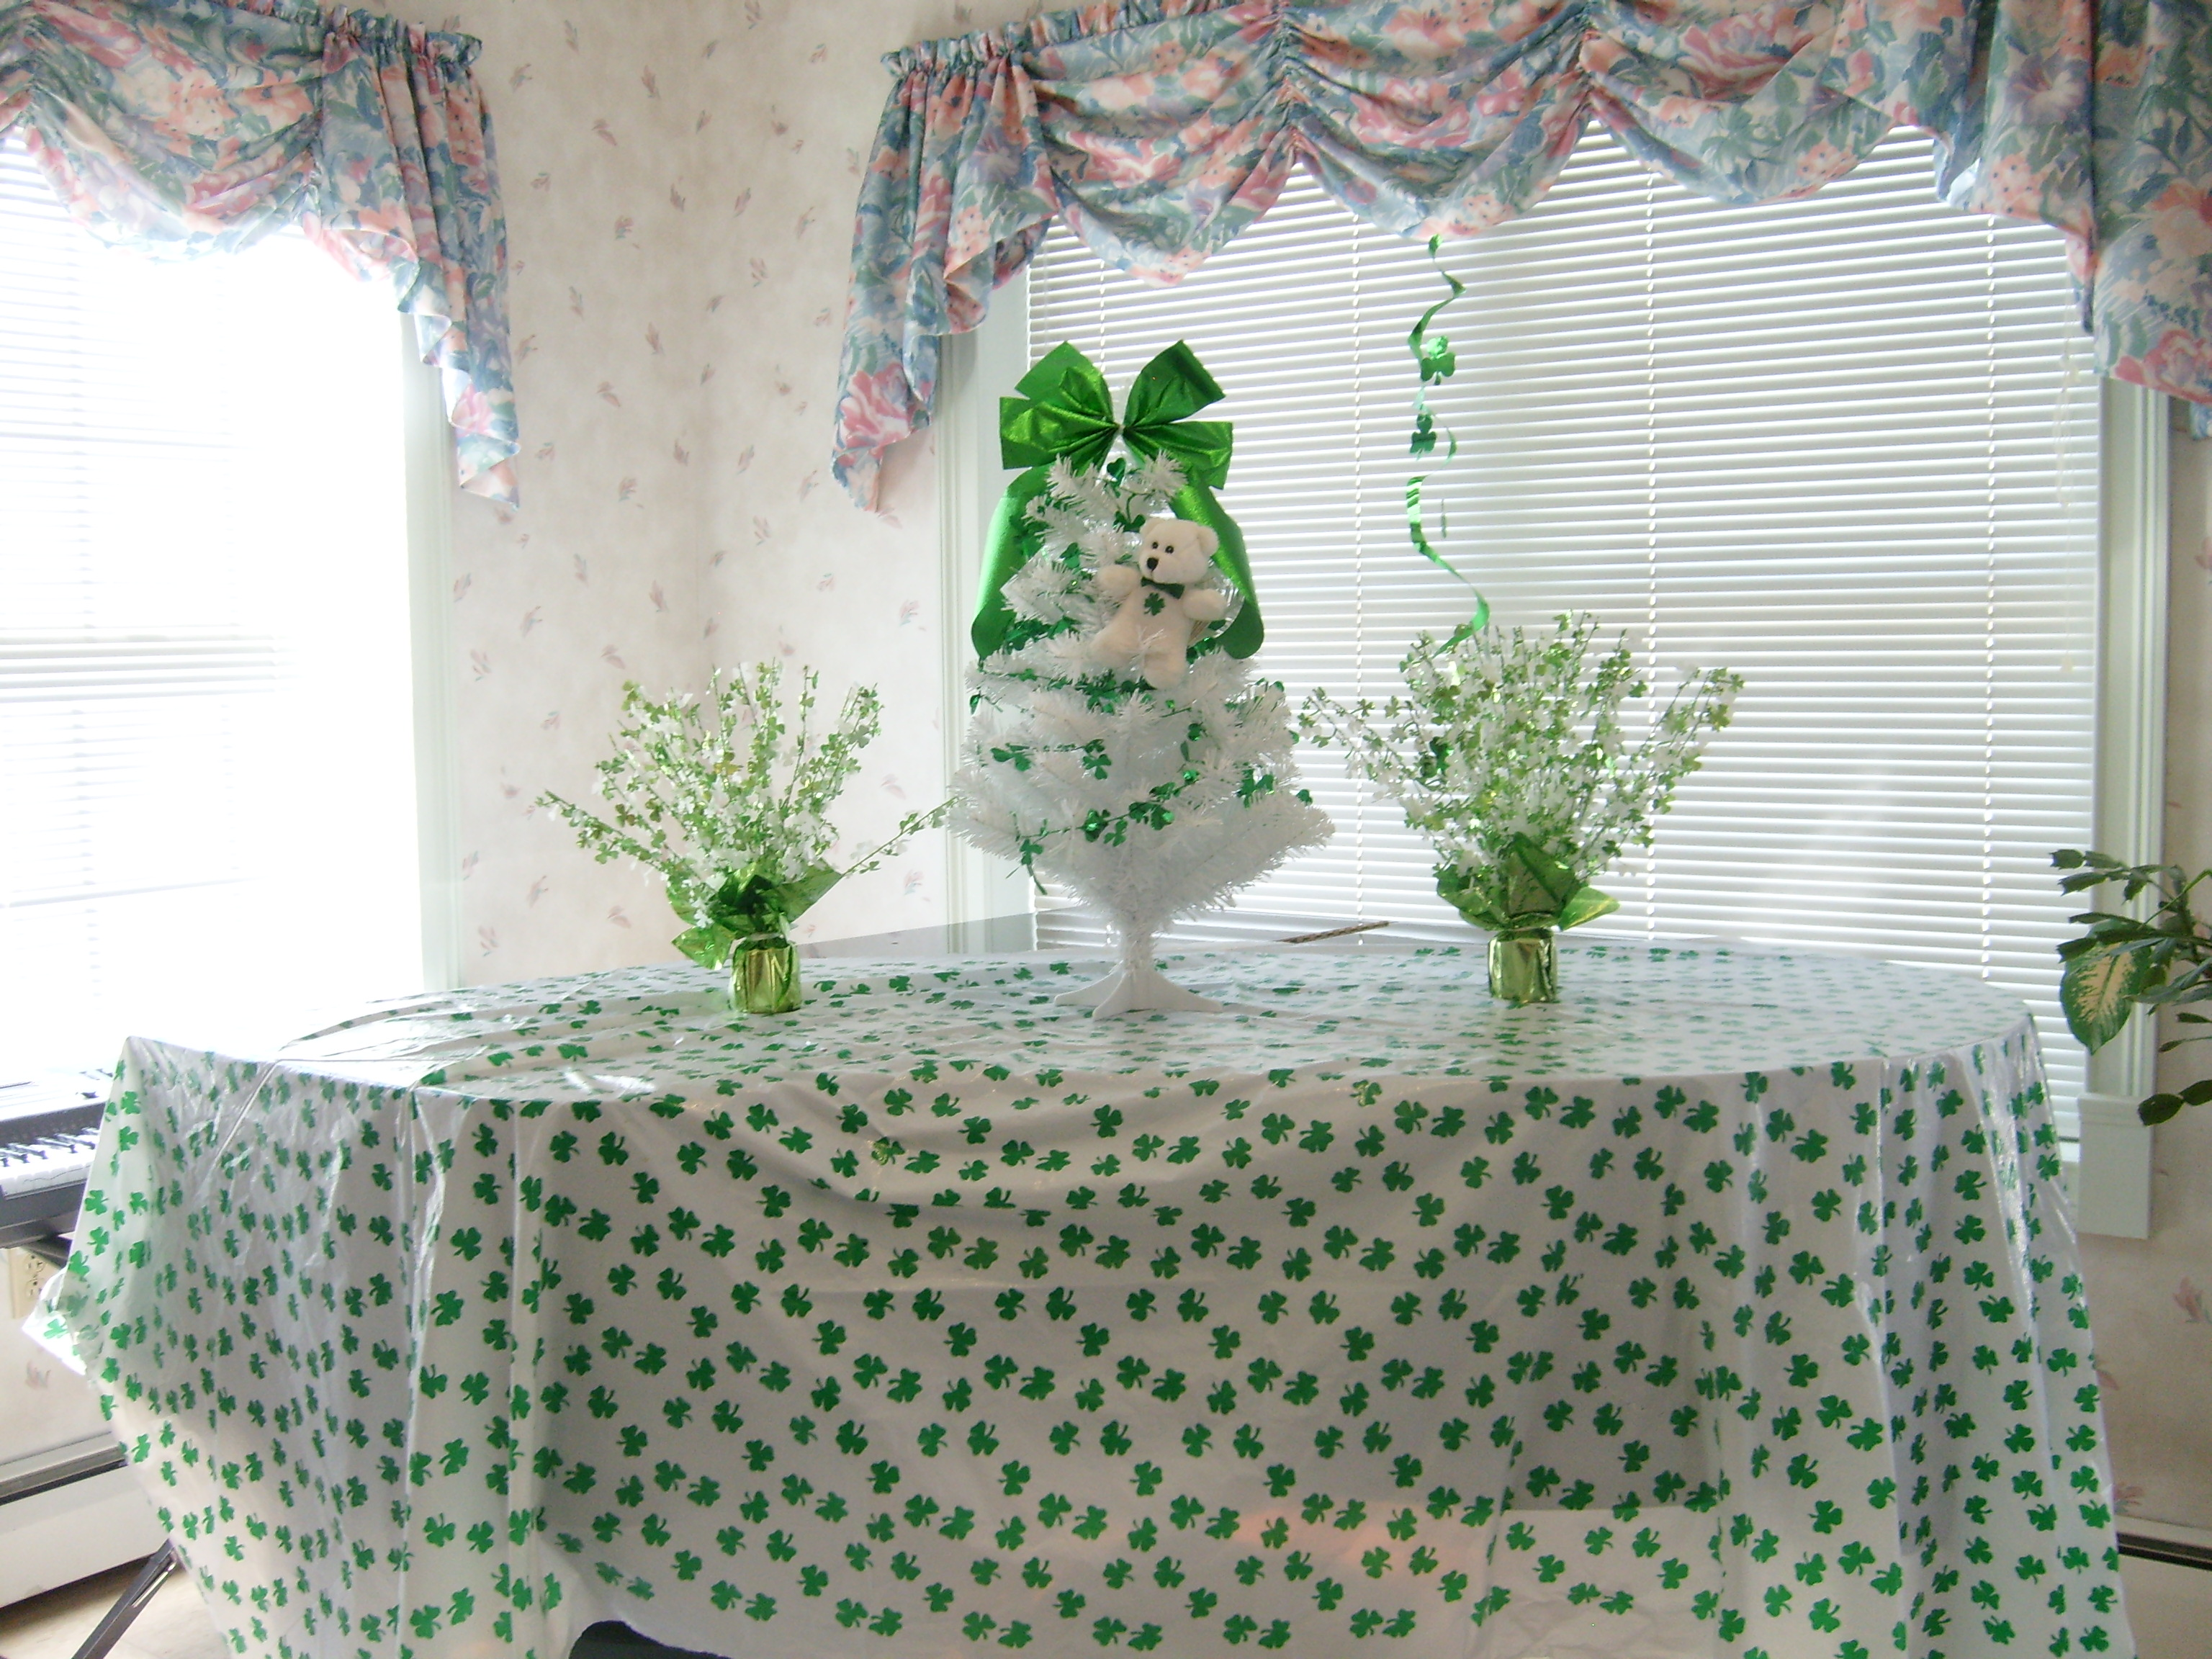 St. Patricks decorations in recreation room